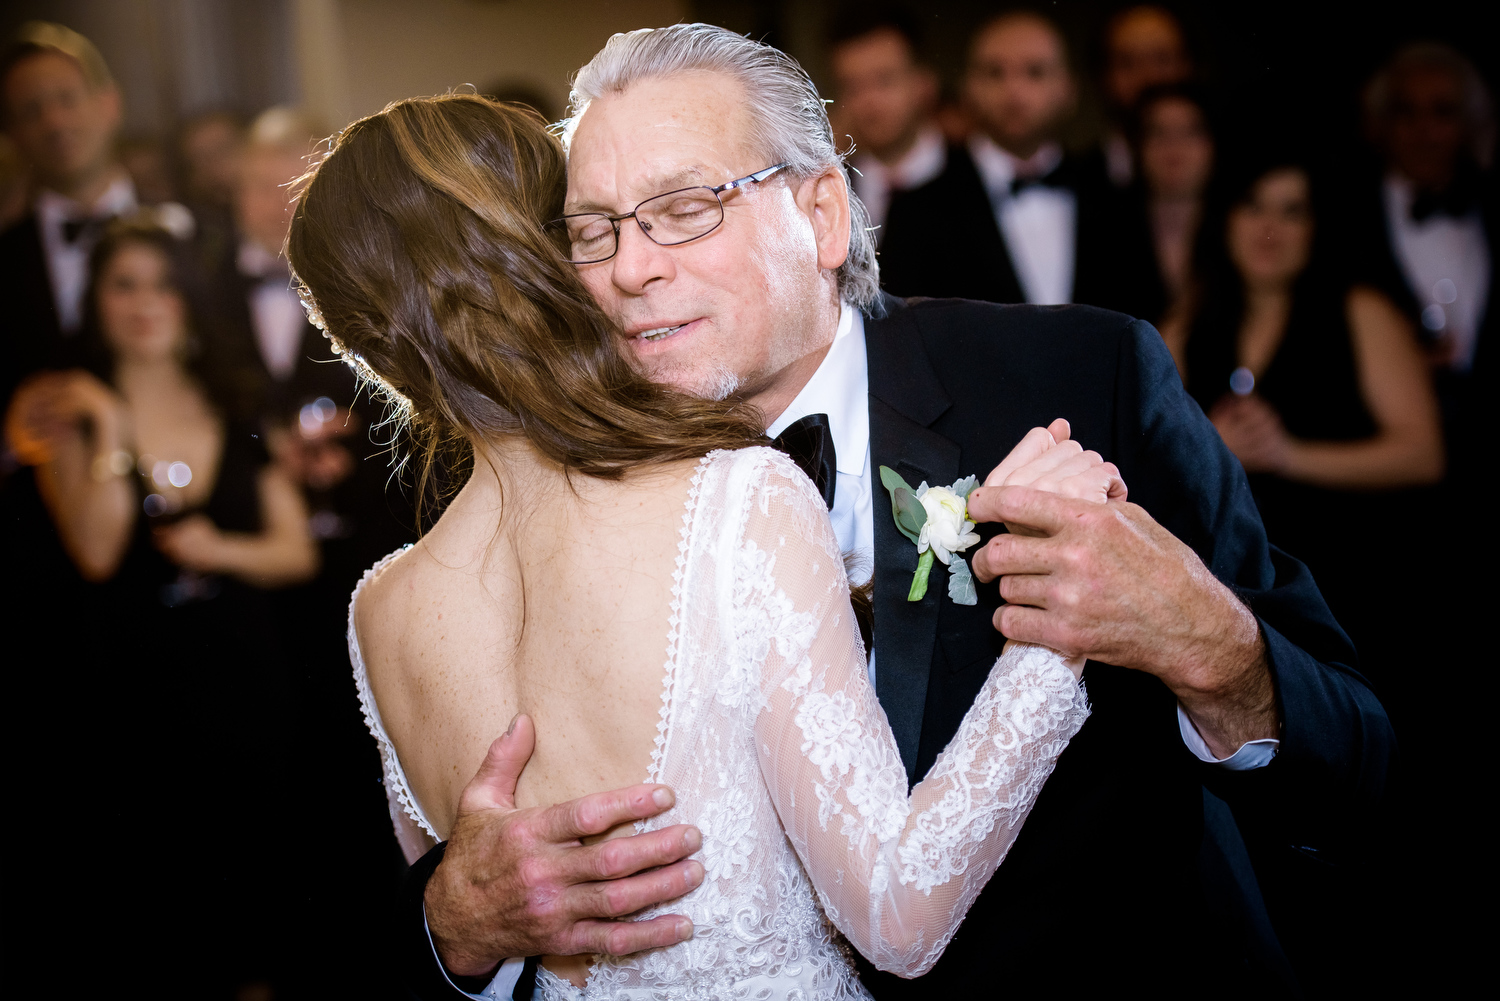 Emotional father-daughter dance during a Thompson Chicago wedding reception.